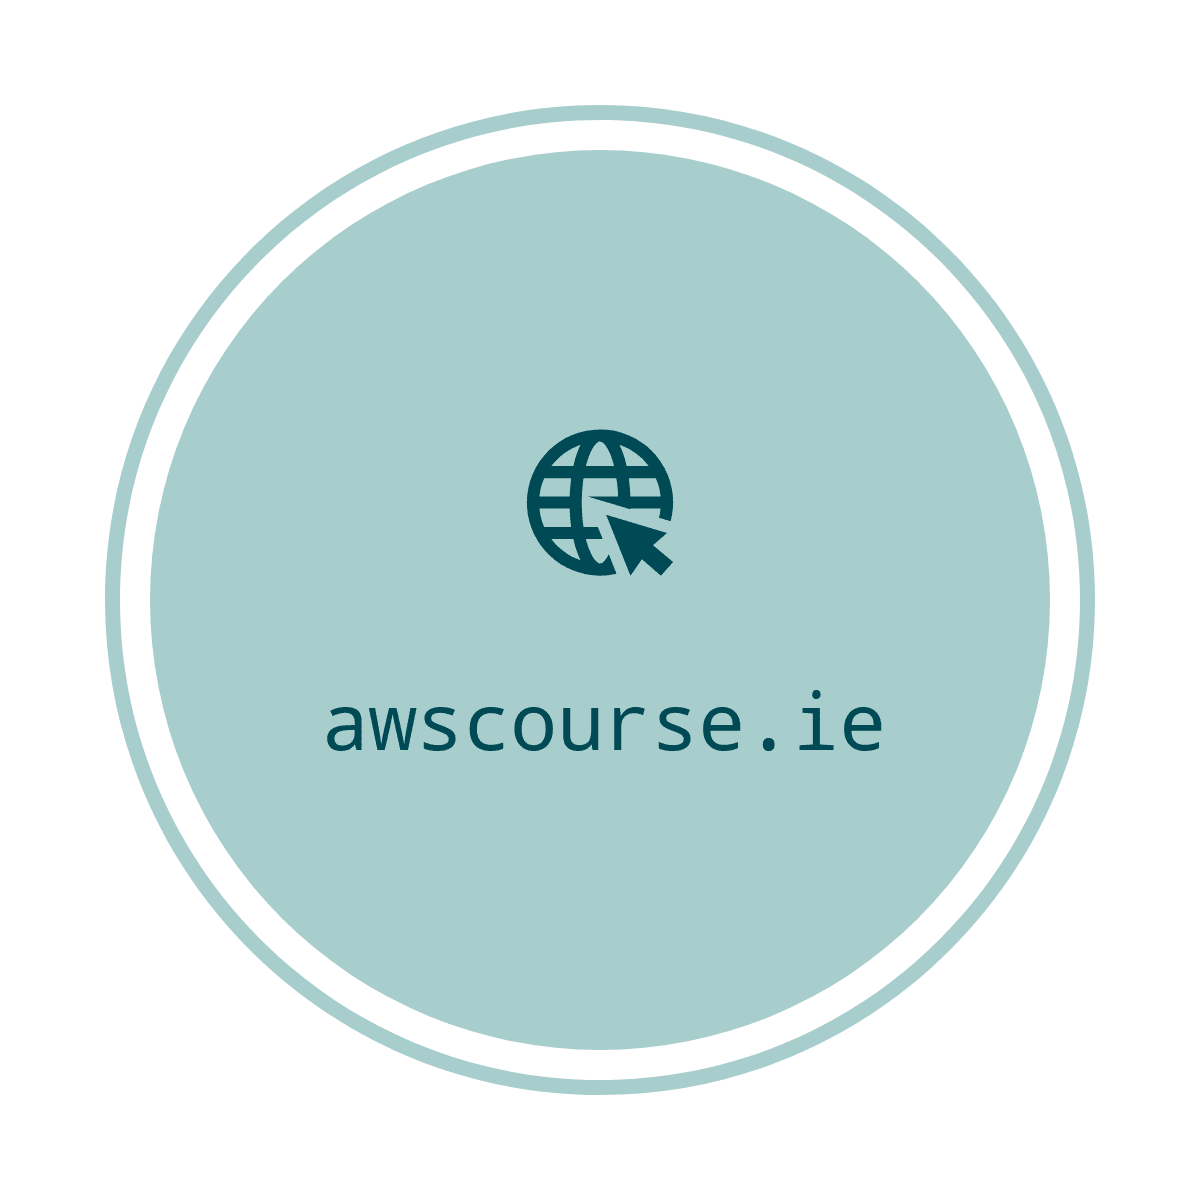 awscourse.ie